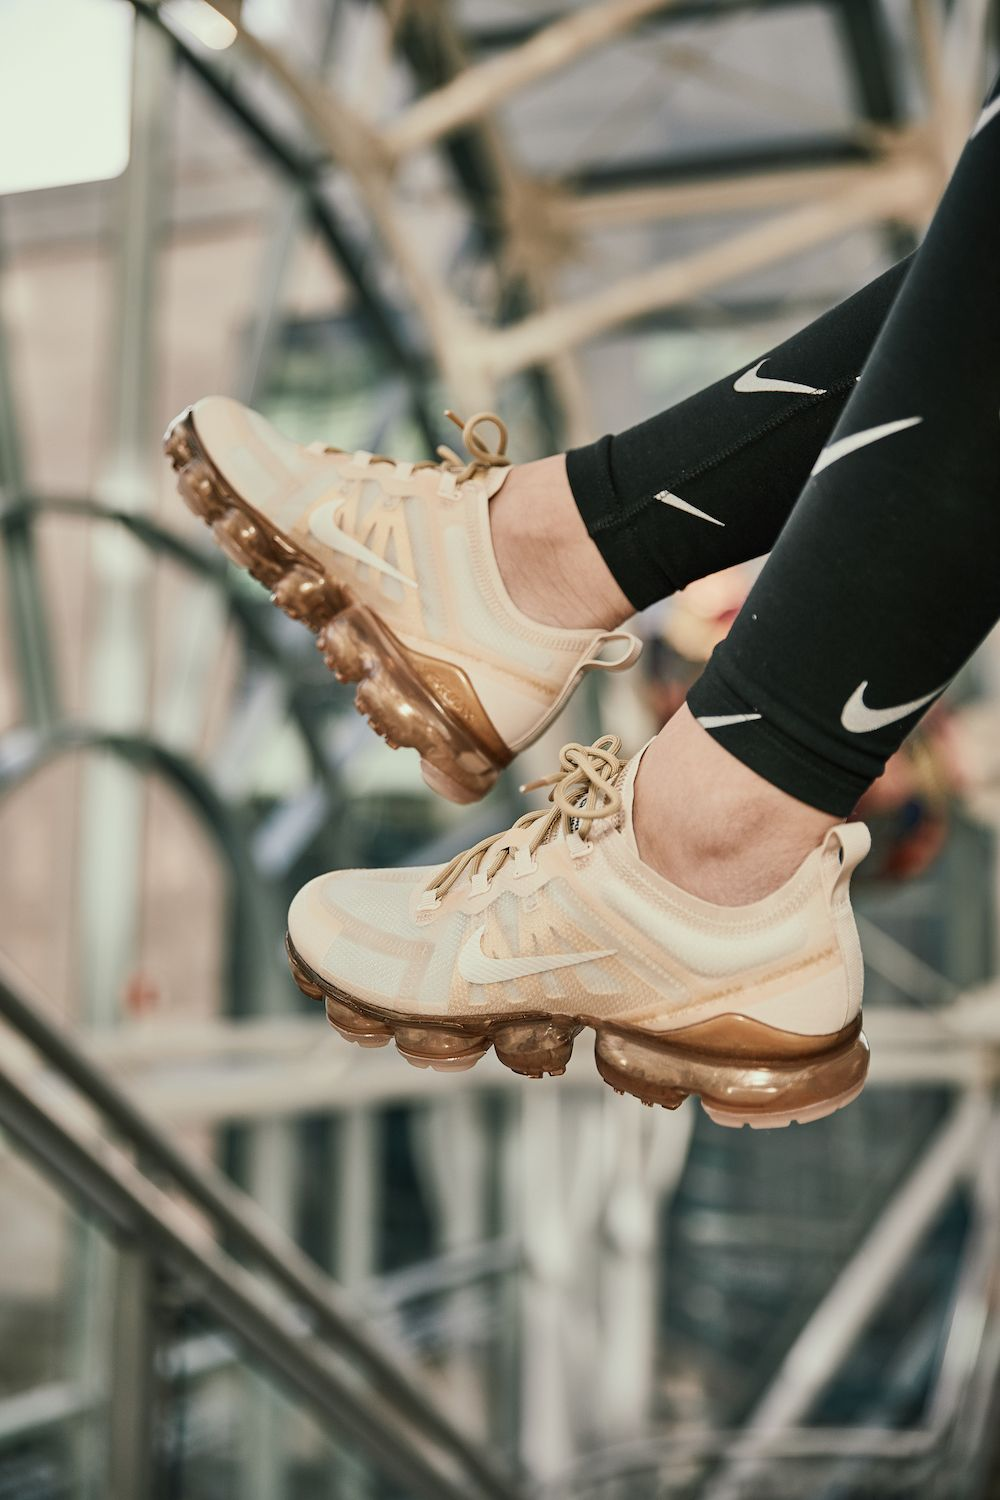 1c5150b89 Nike VaporMax 2019 Womens Fashion Sneakers, Nike Fashion, Nike Women  Sneakers, Fashion Shoes